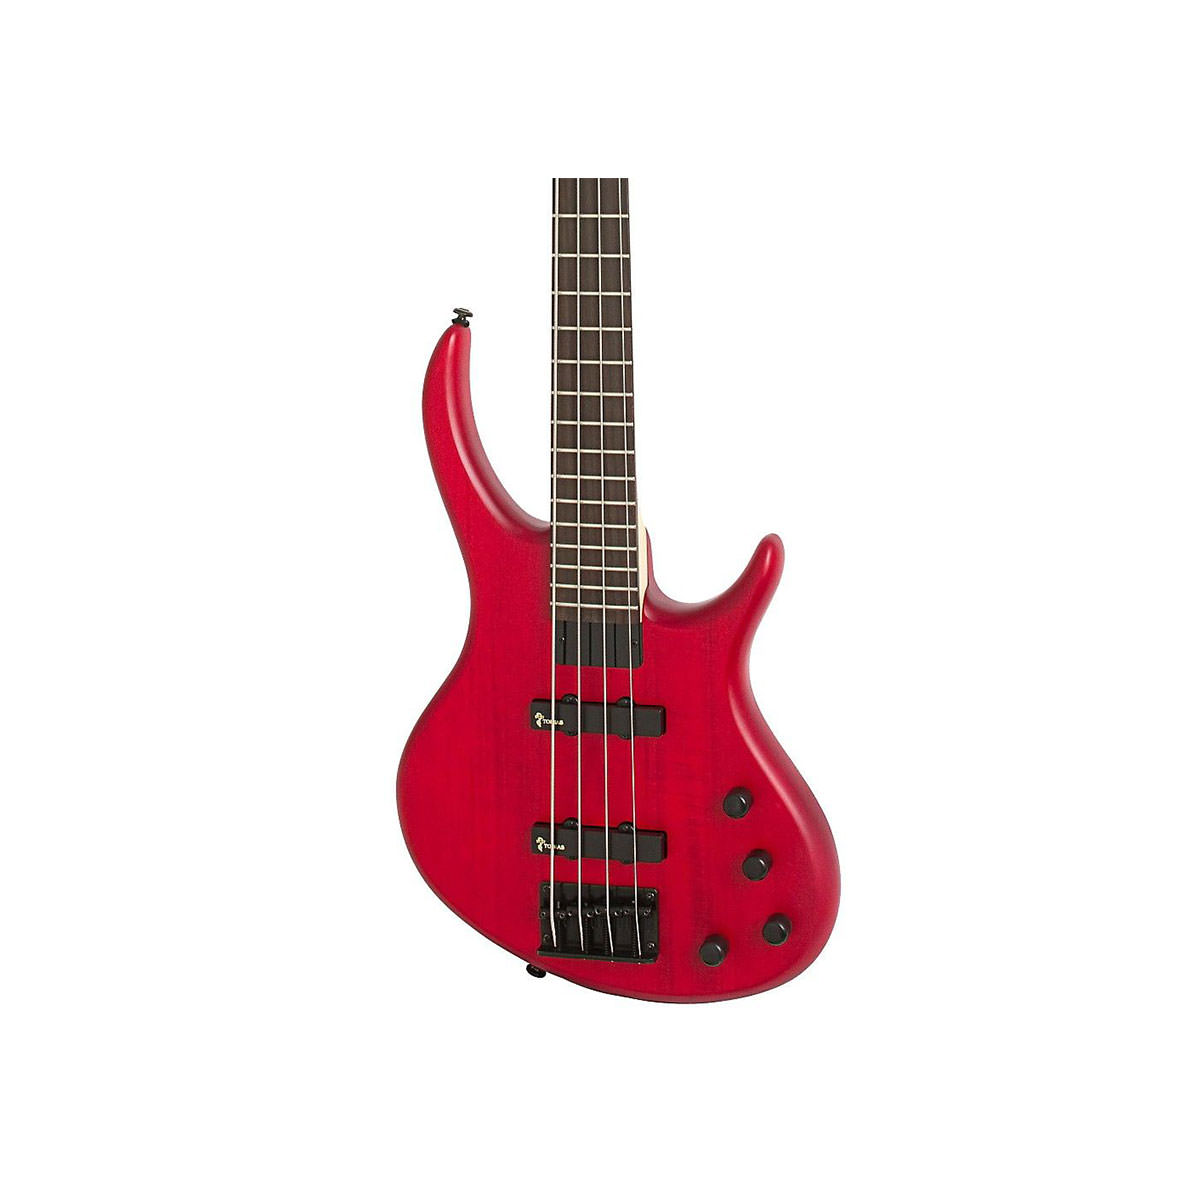 Epiphone Toby IV Bass Deluxe – Trans Red Gloss